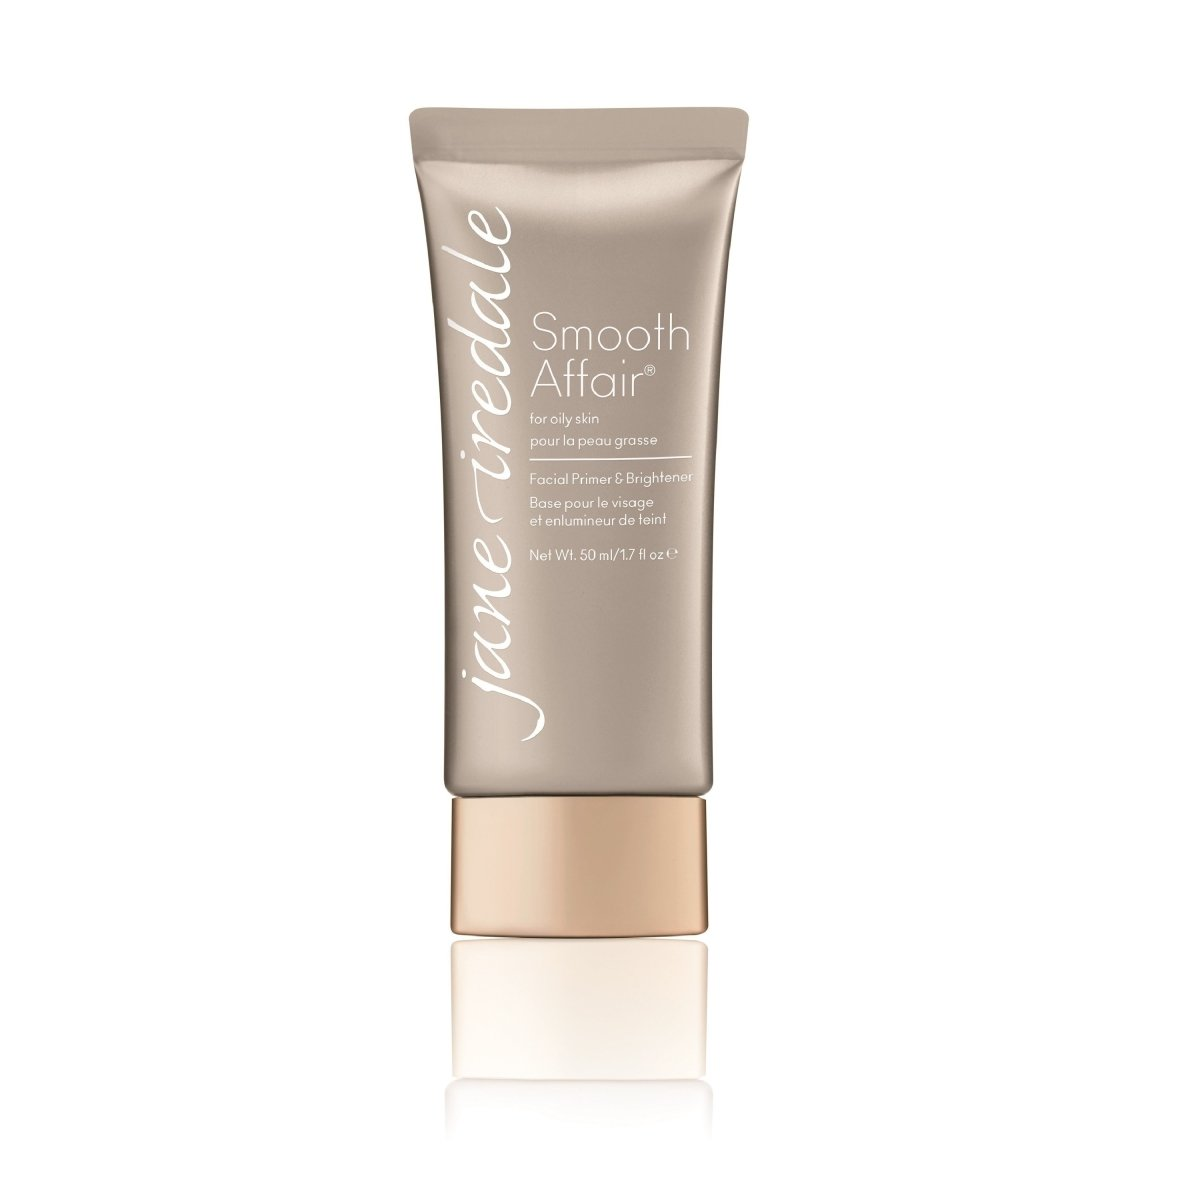 JANE IREDALE Smooth Affair ® For Oily Skin Facial Primer & Brightener 亮麗柔滑控油打底乳液 [50ml] - MINT Organics